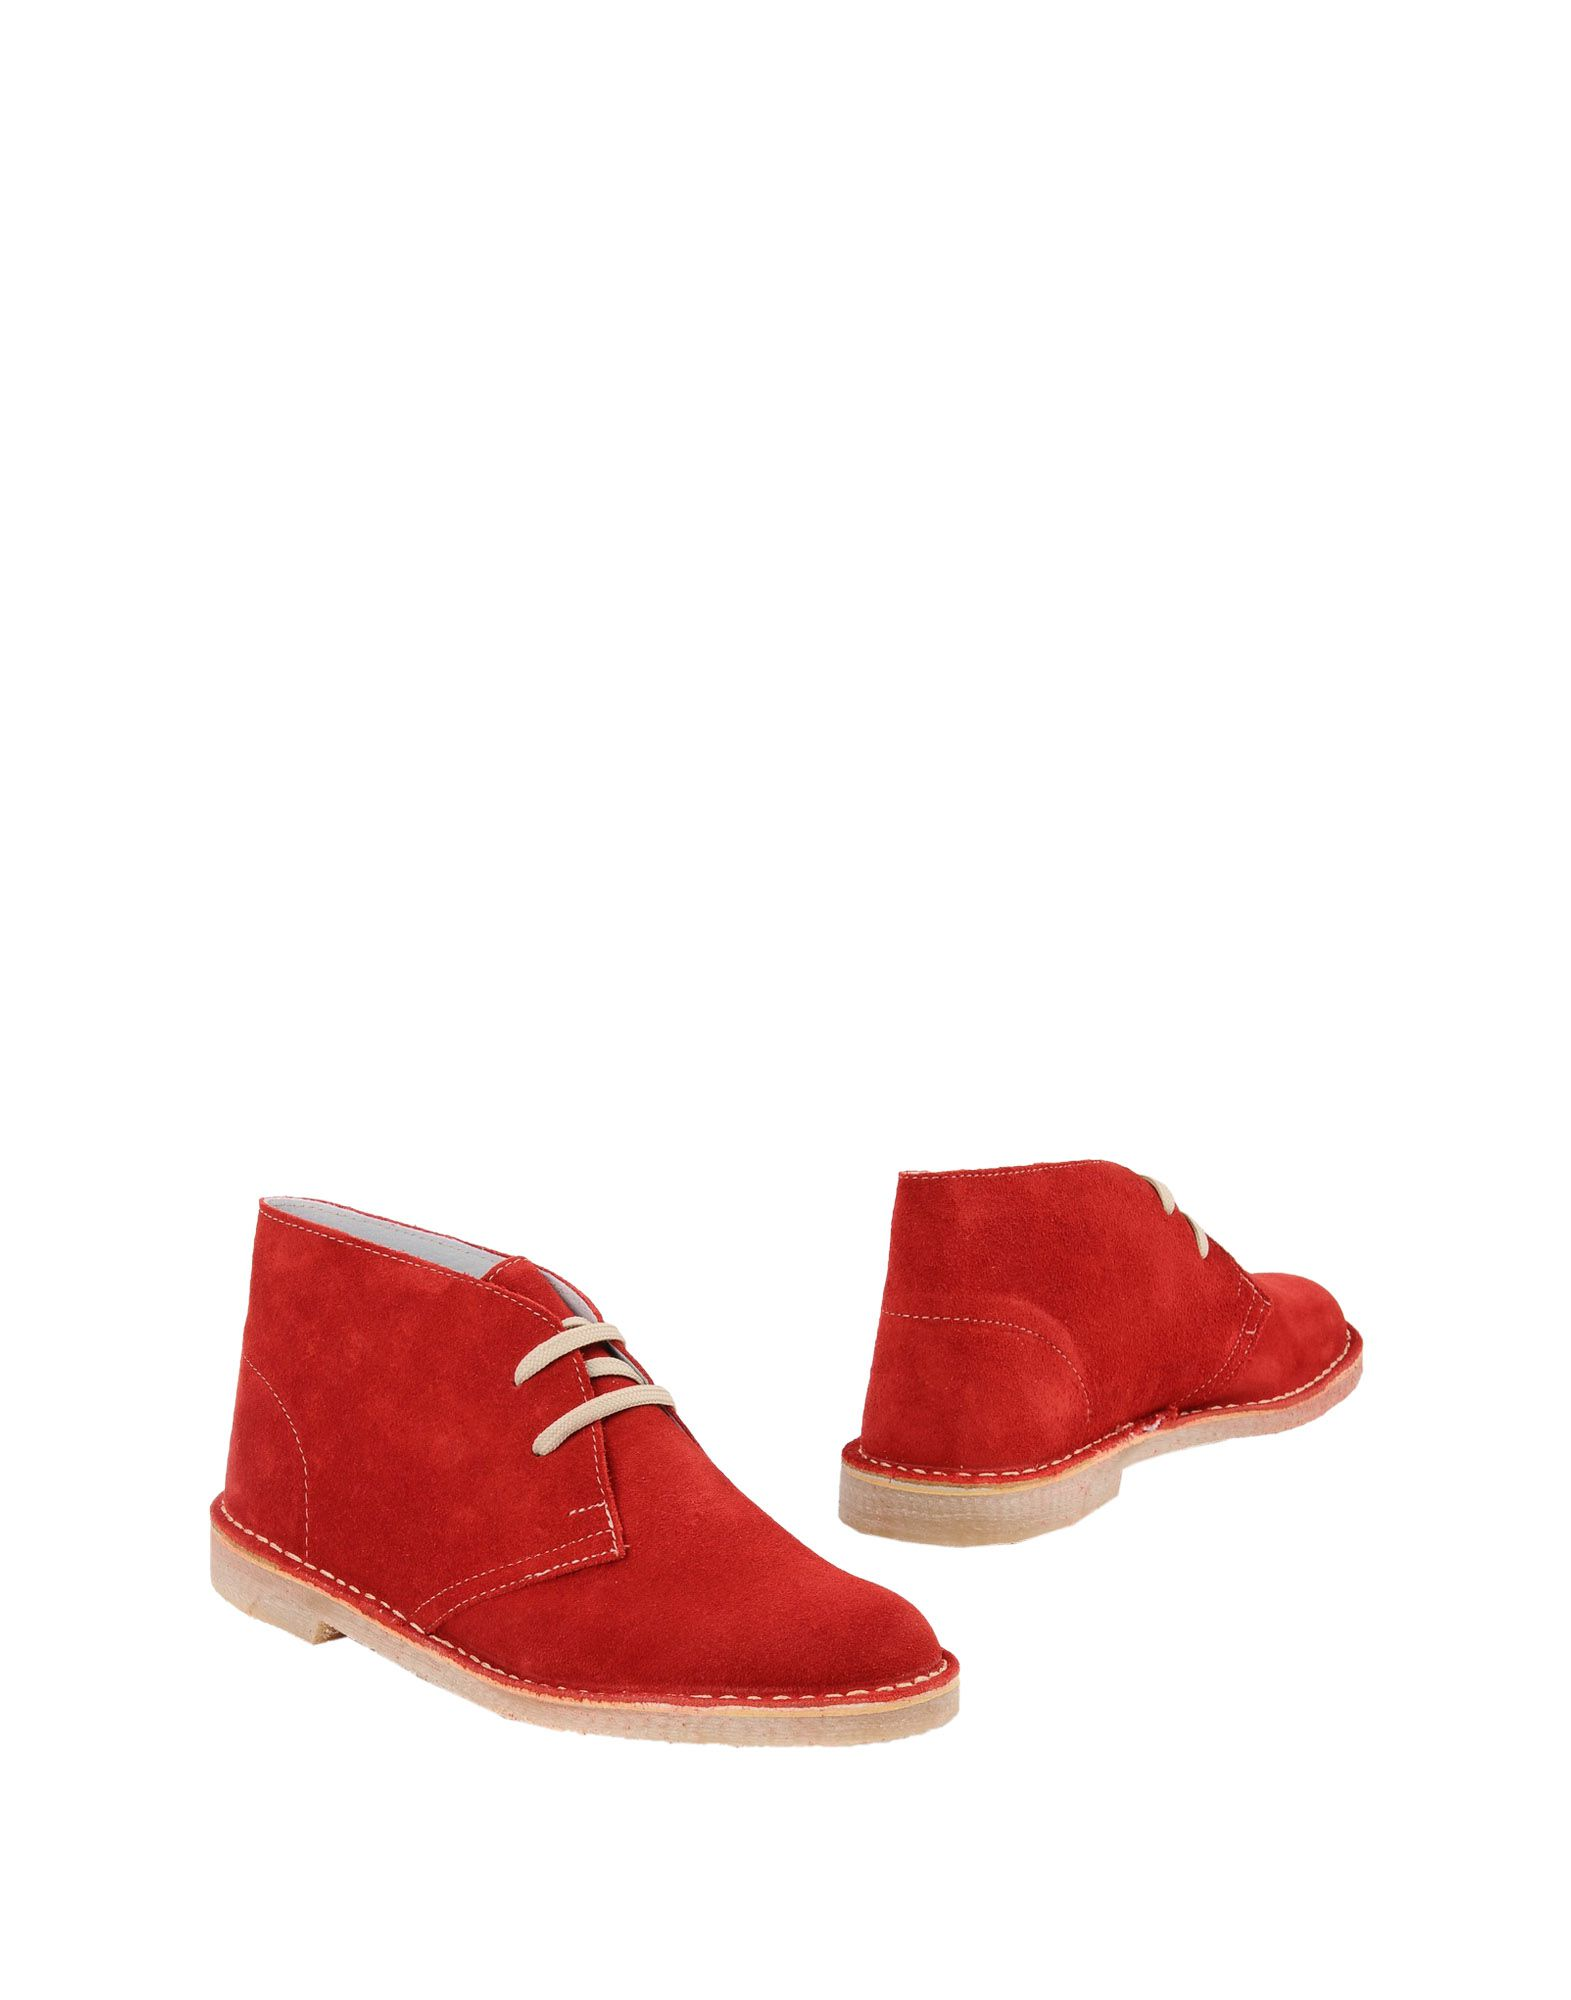 Bottine Edwa Homme - Bottines Edwa sur